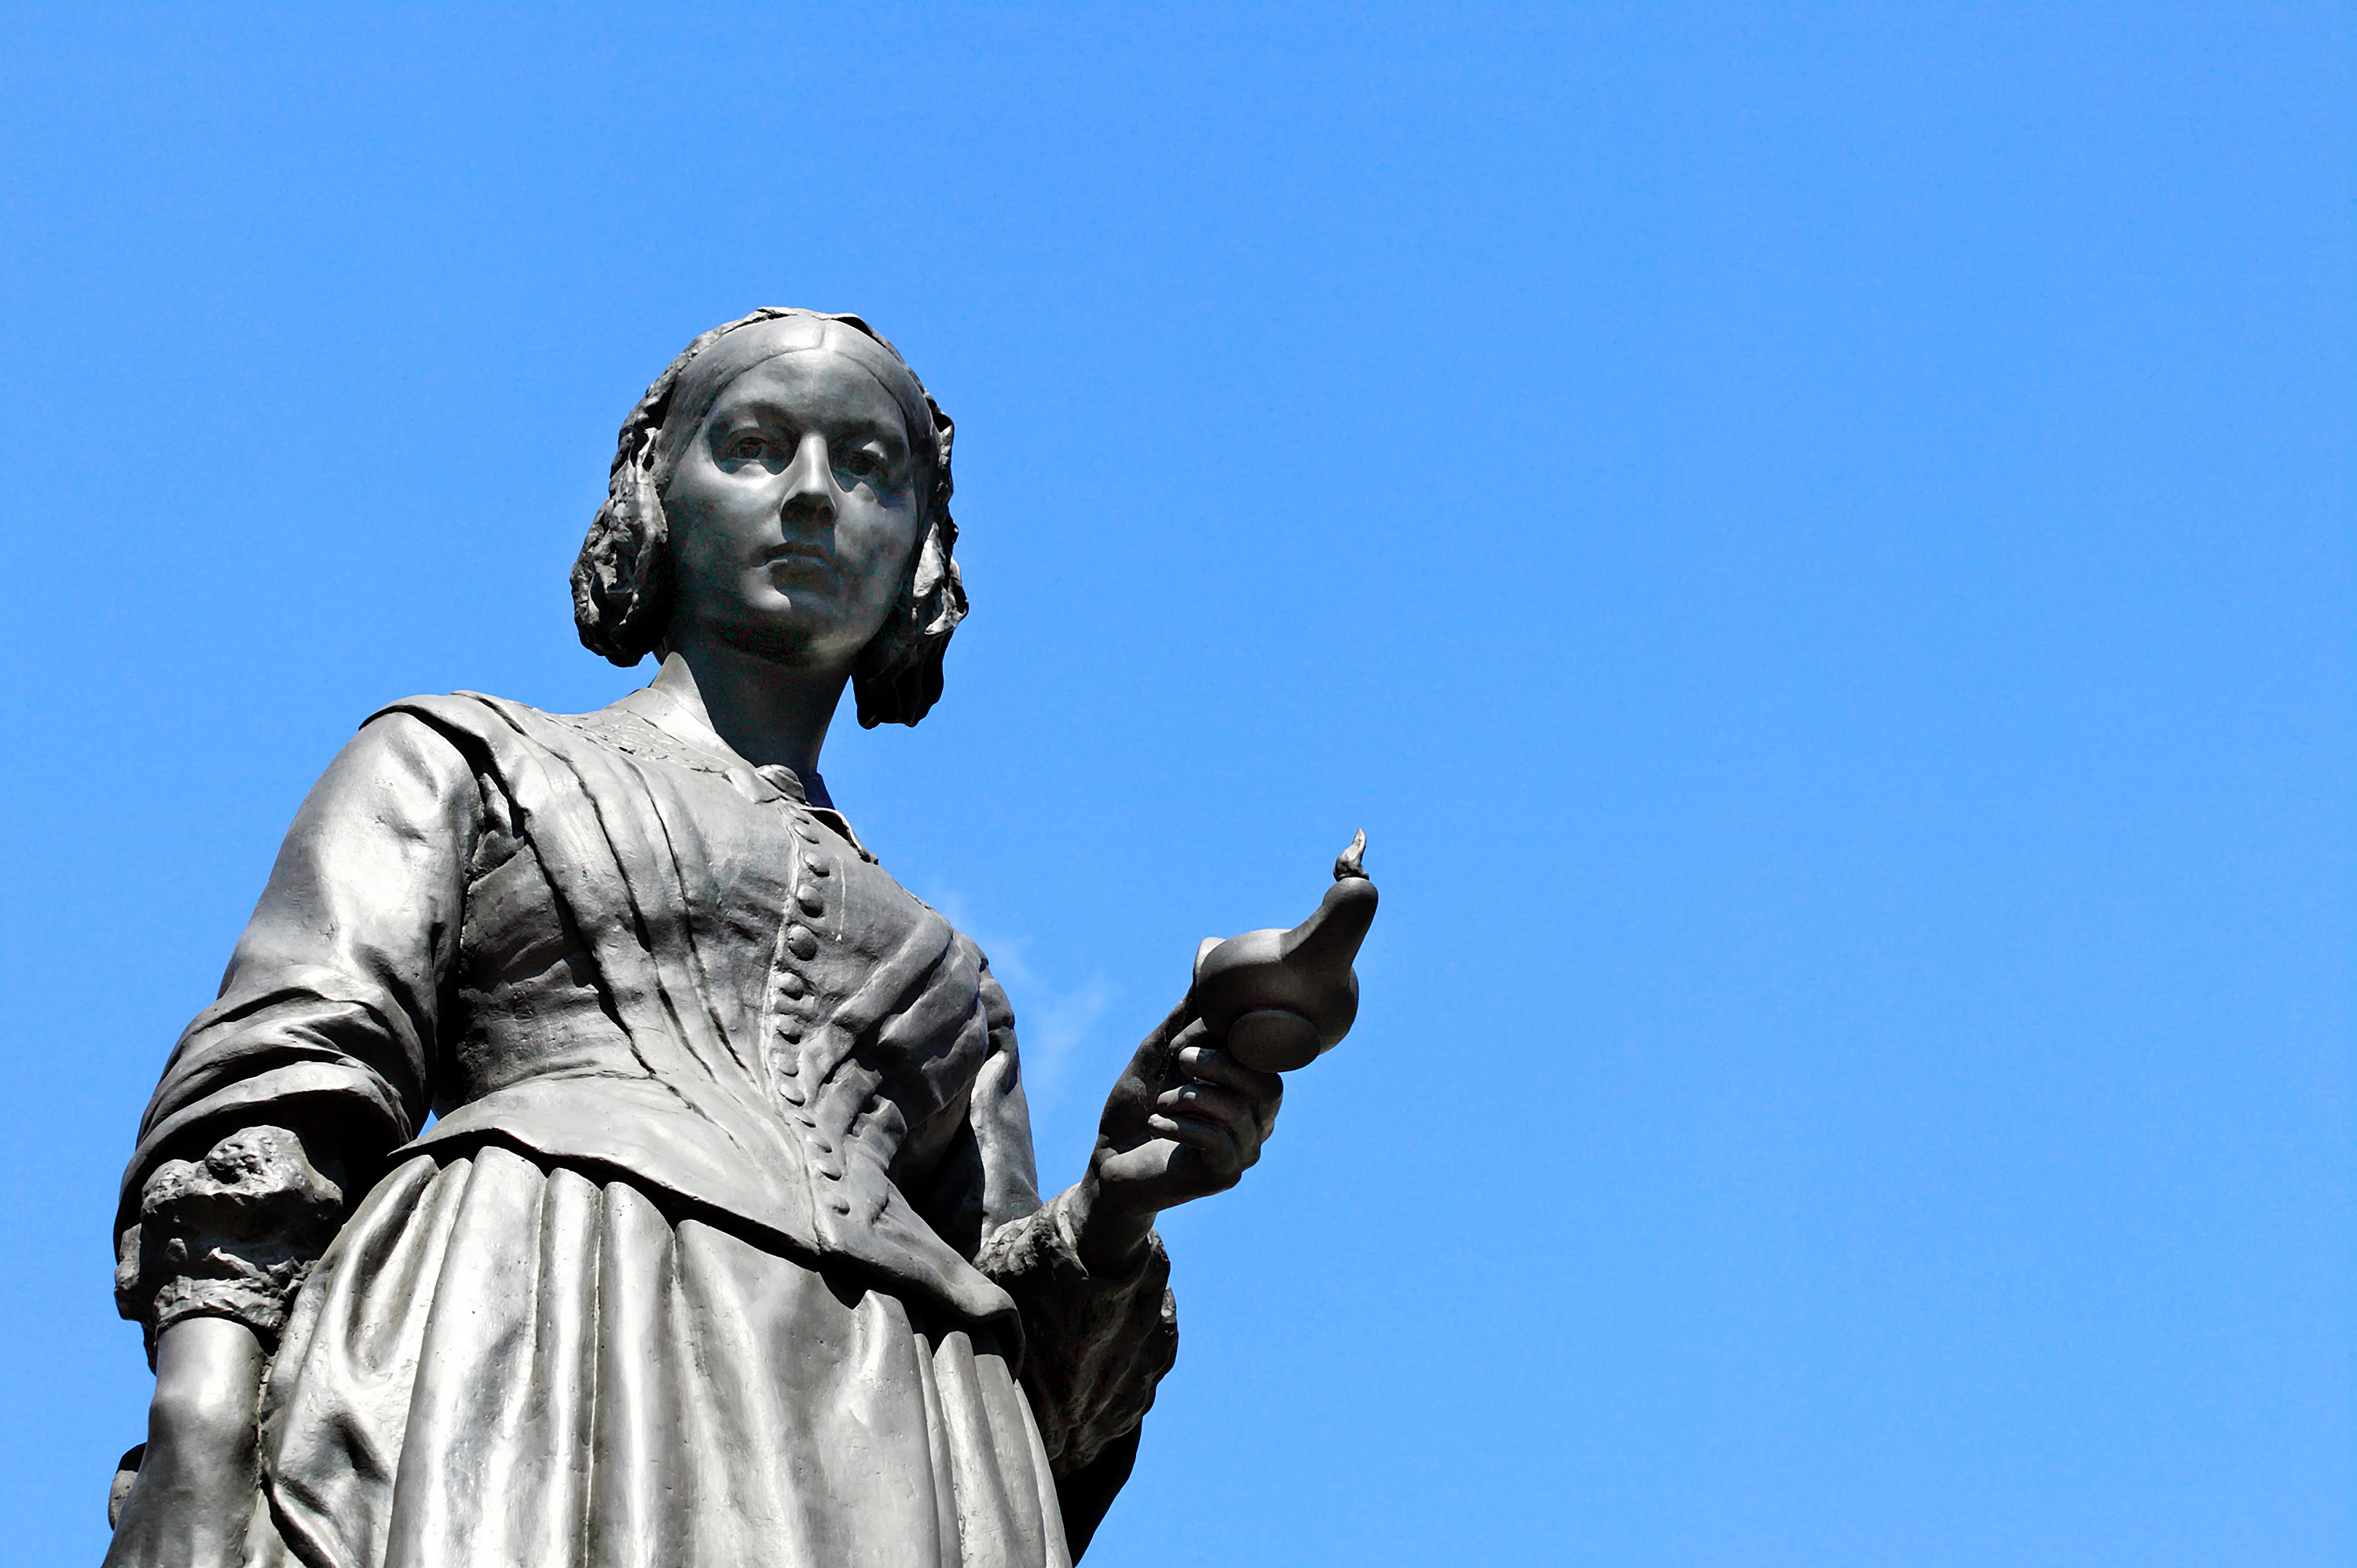 statue of Florence Nightingale against blue sky